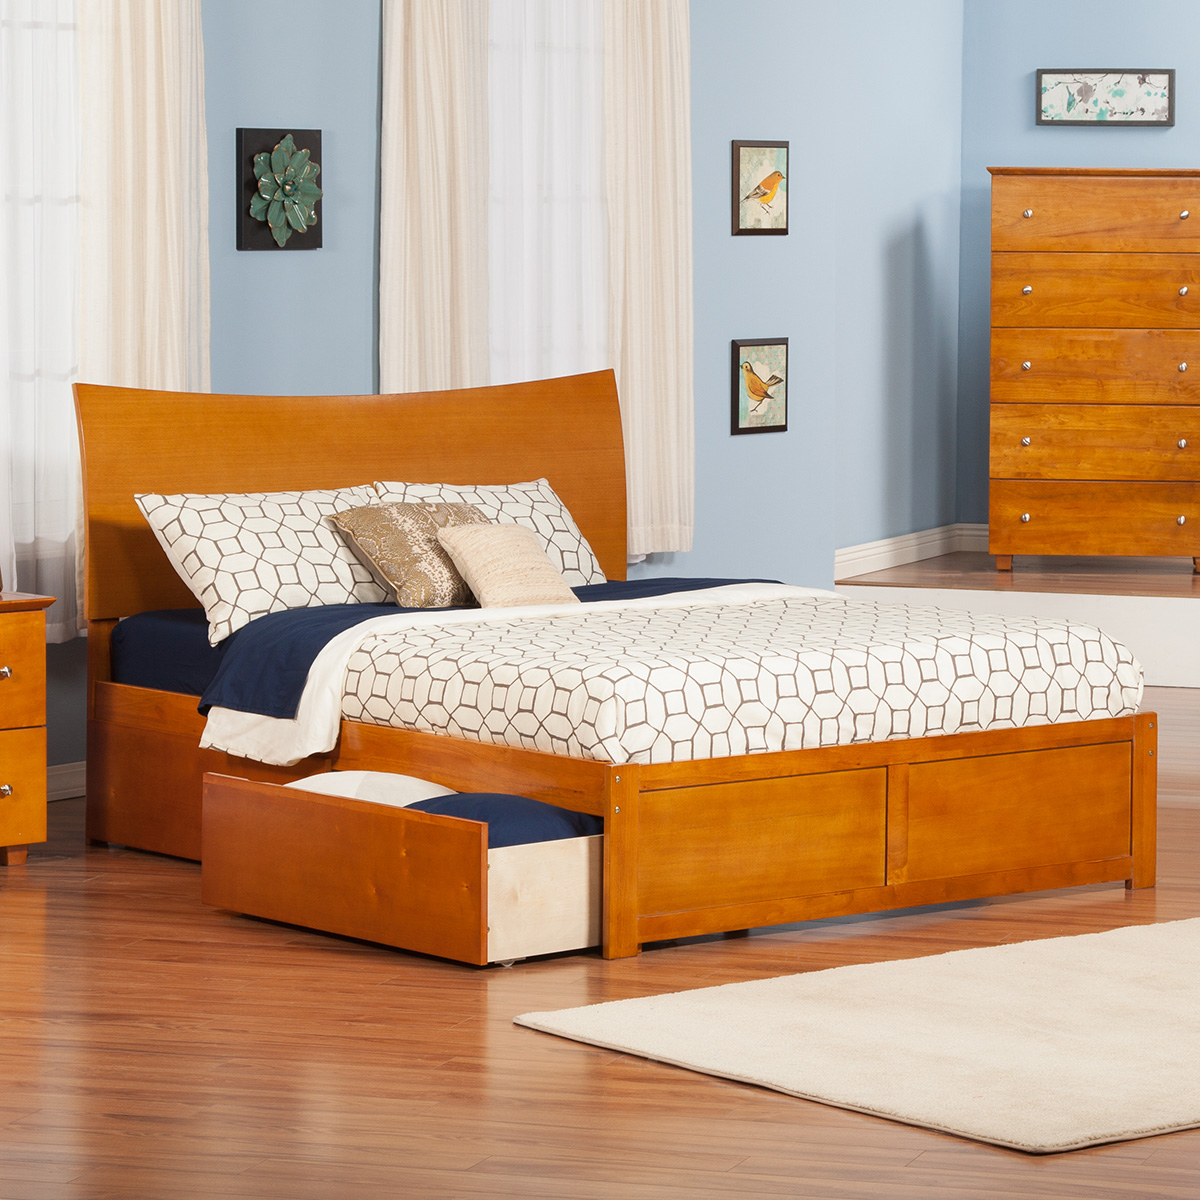 Soho Platform Bed - Flat Panel Footboard Soho Platform Bed - Flat Panel Footboard